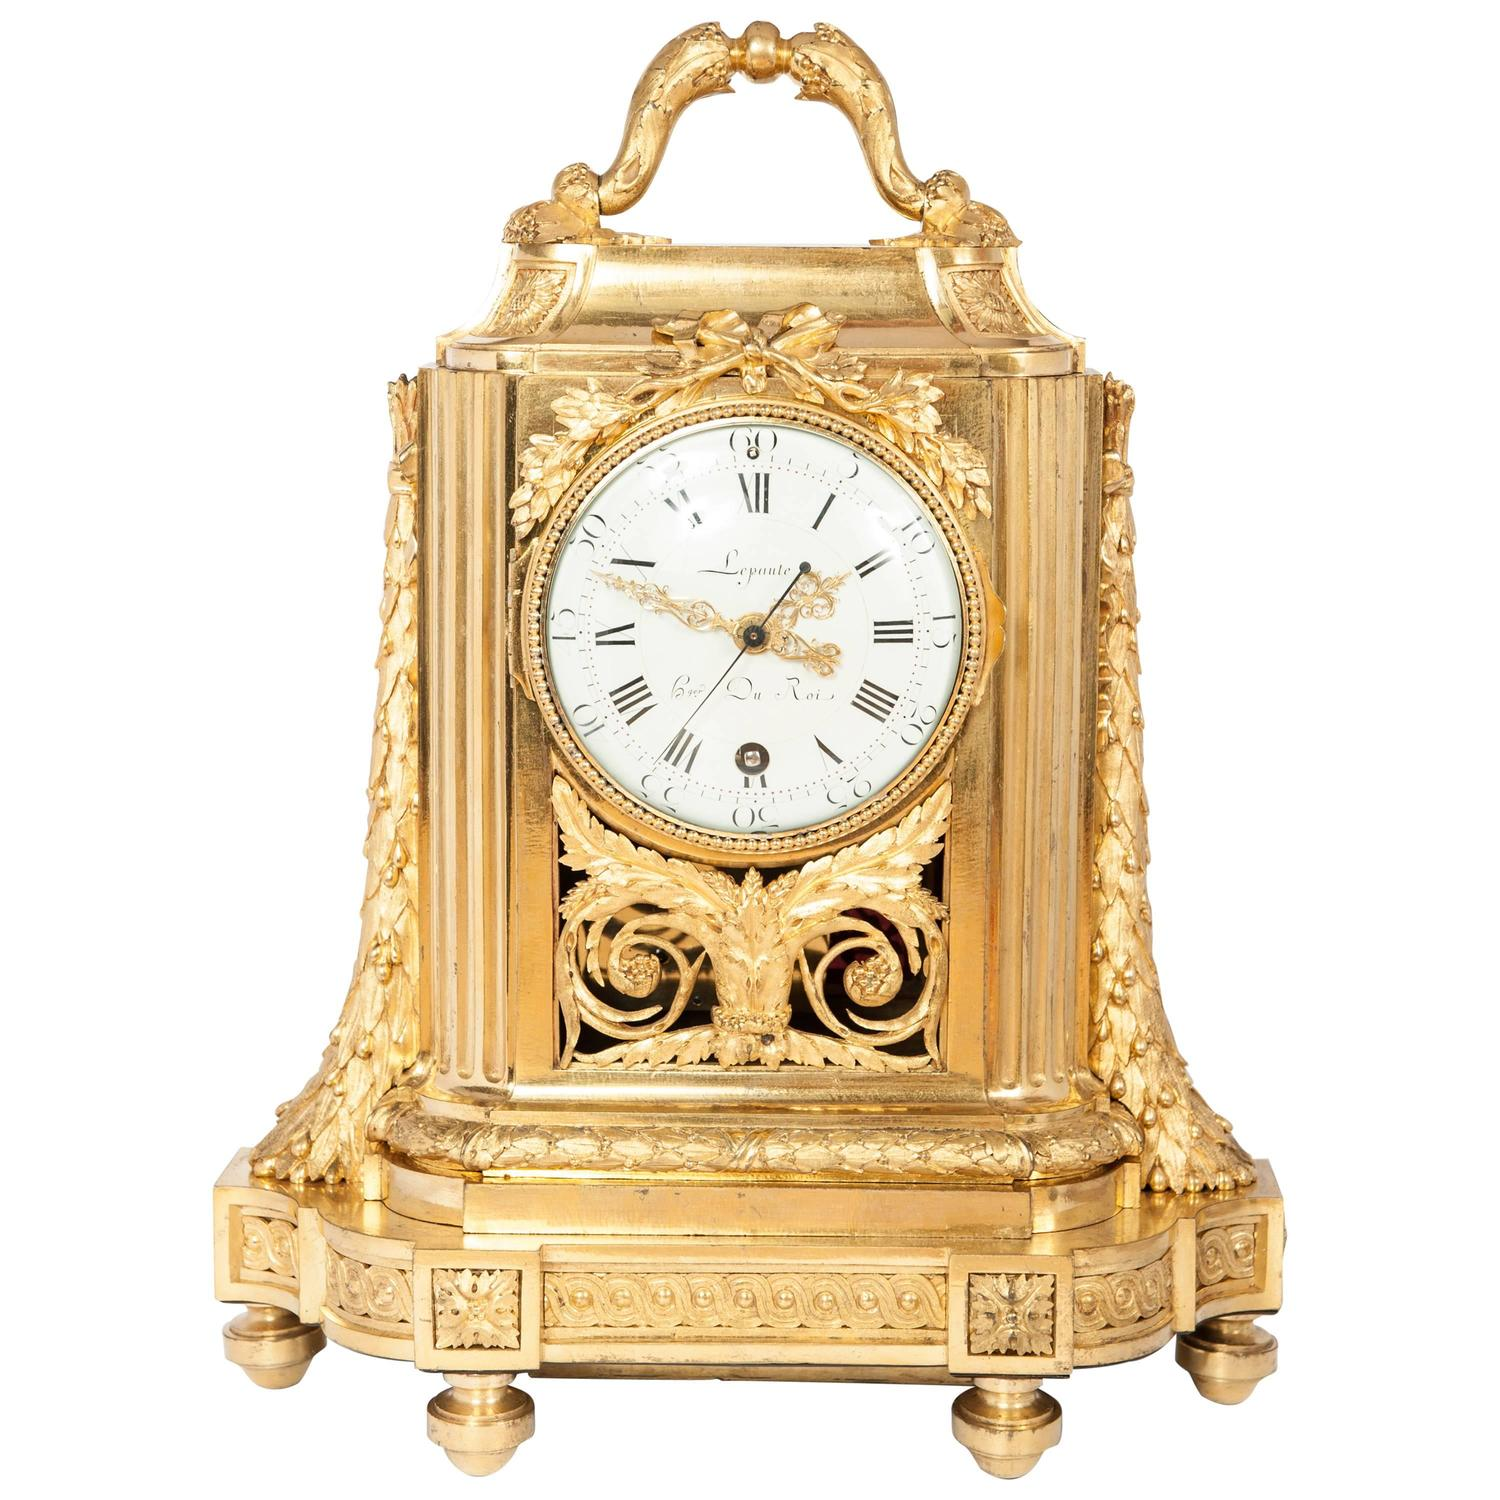 Very unusual high quality early louis xvi traveling clock Unusual clocks for sale